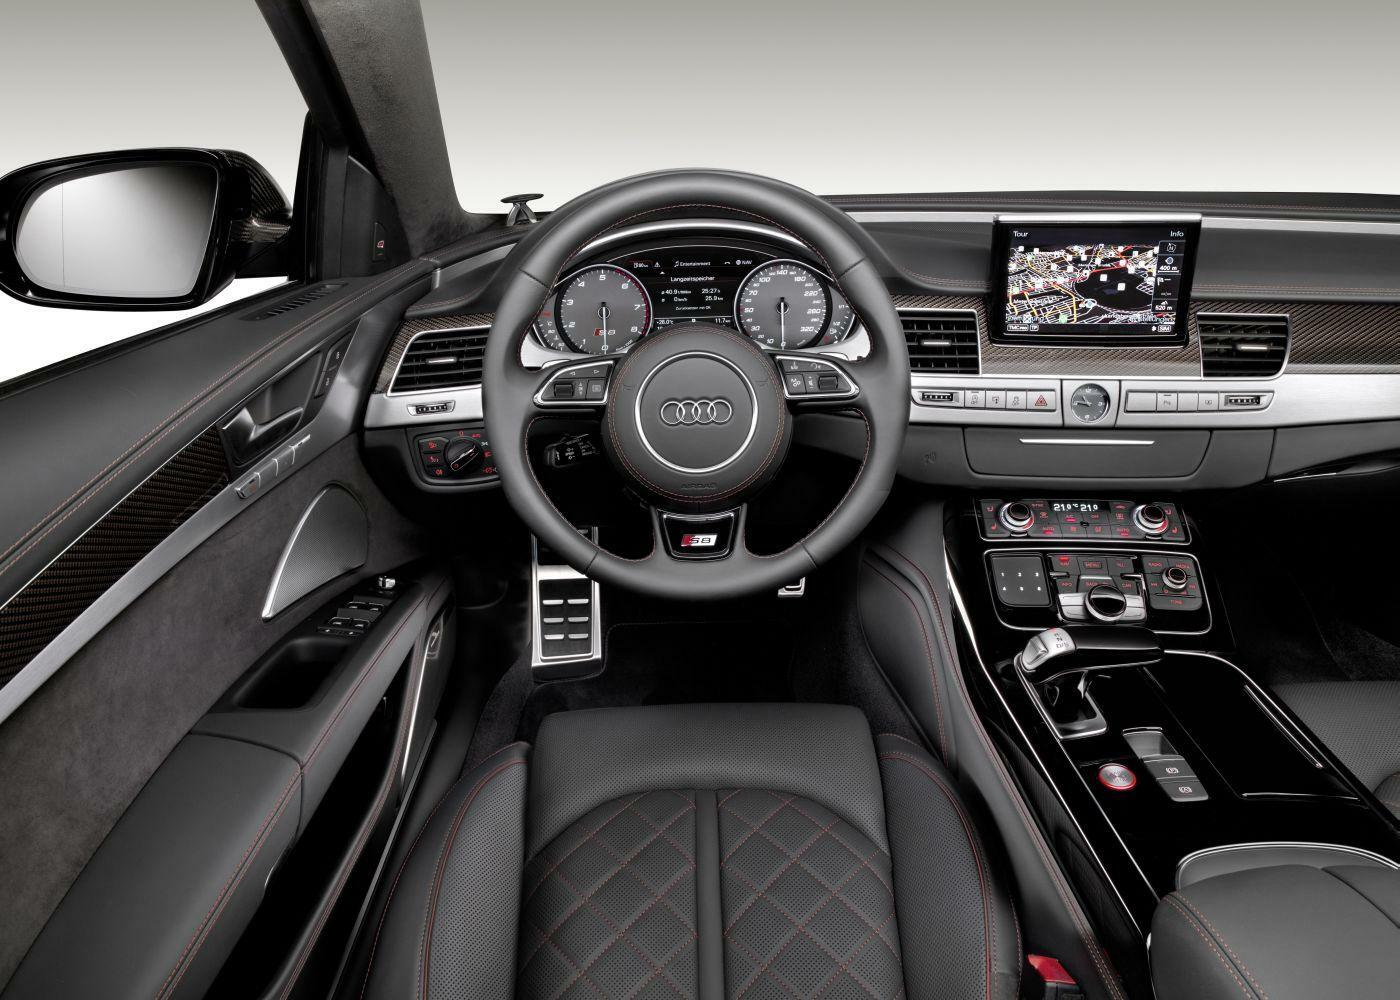 testfahrt mit der sportlimousine audi s8 plus. Black Bedroom Furniture Sets. Home Design Ideas